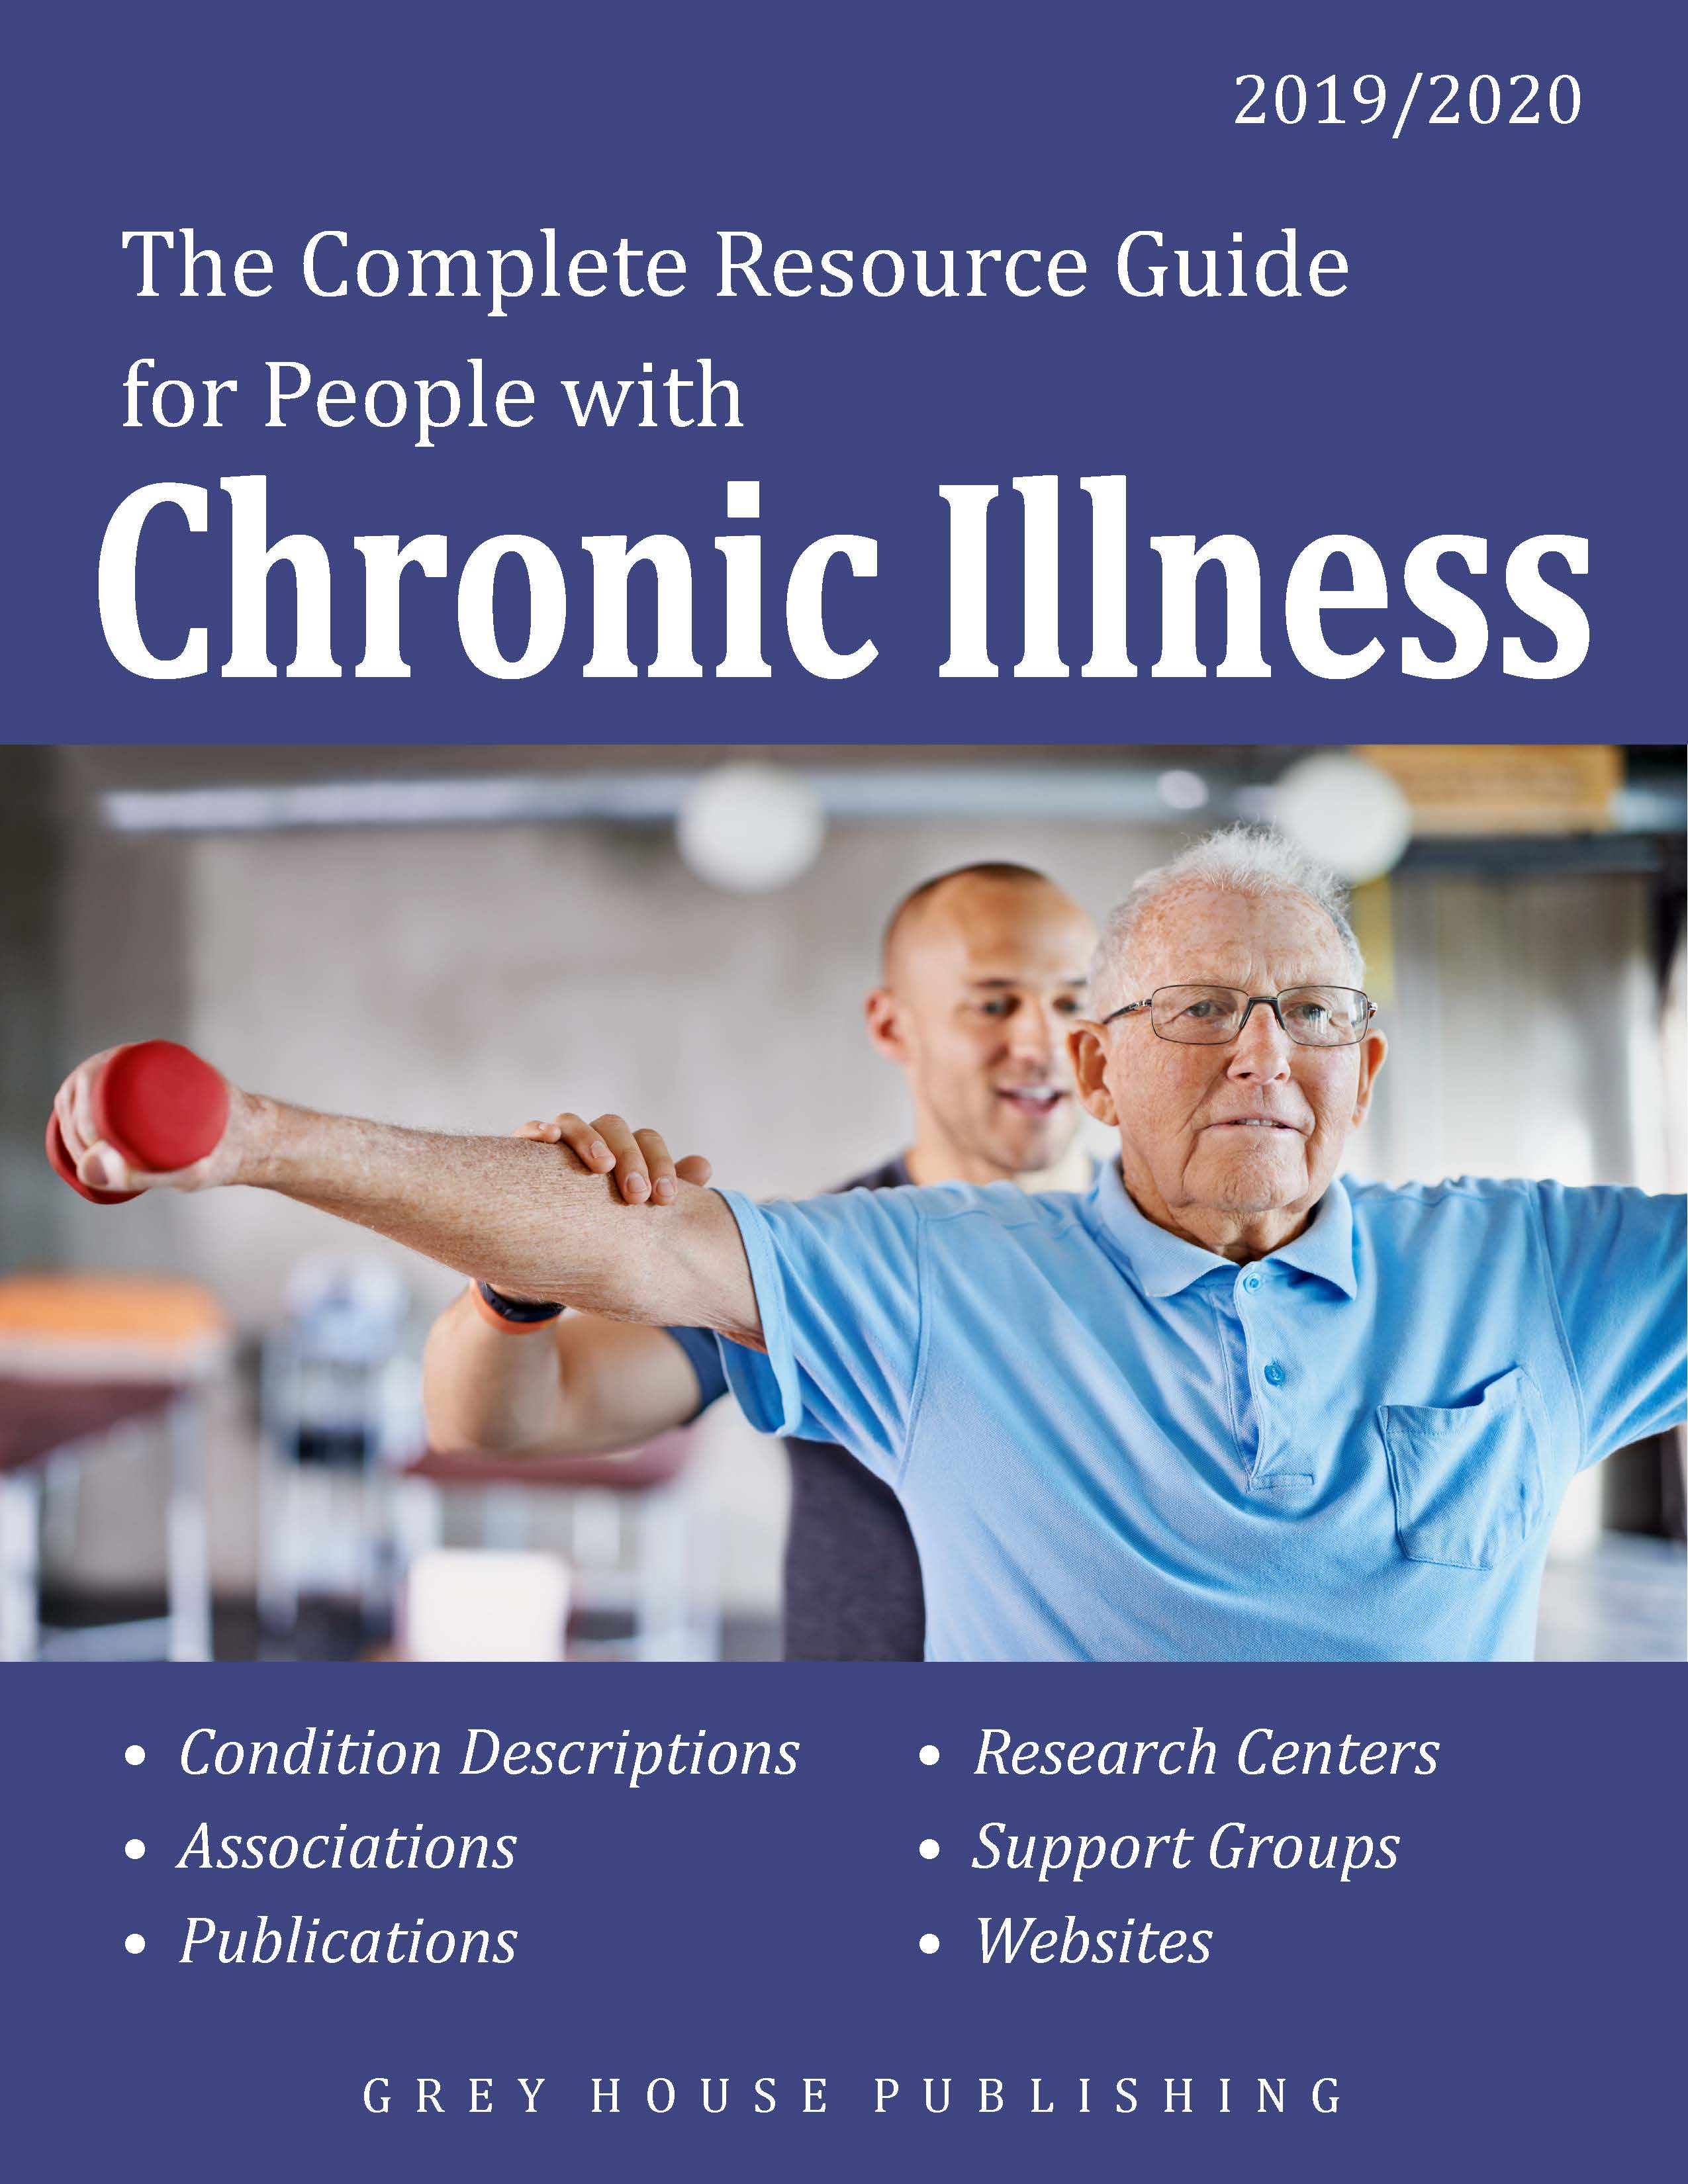 The Complete Directory for People with Chronic Illness